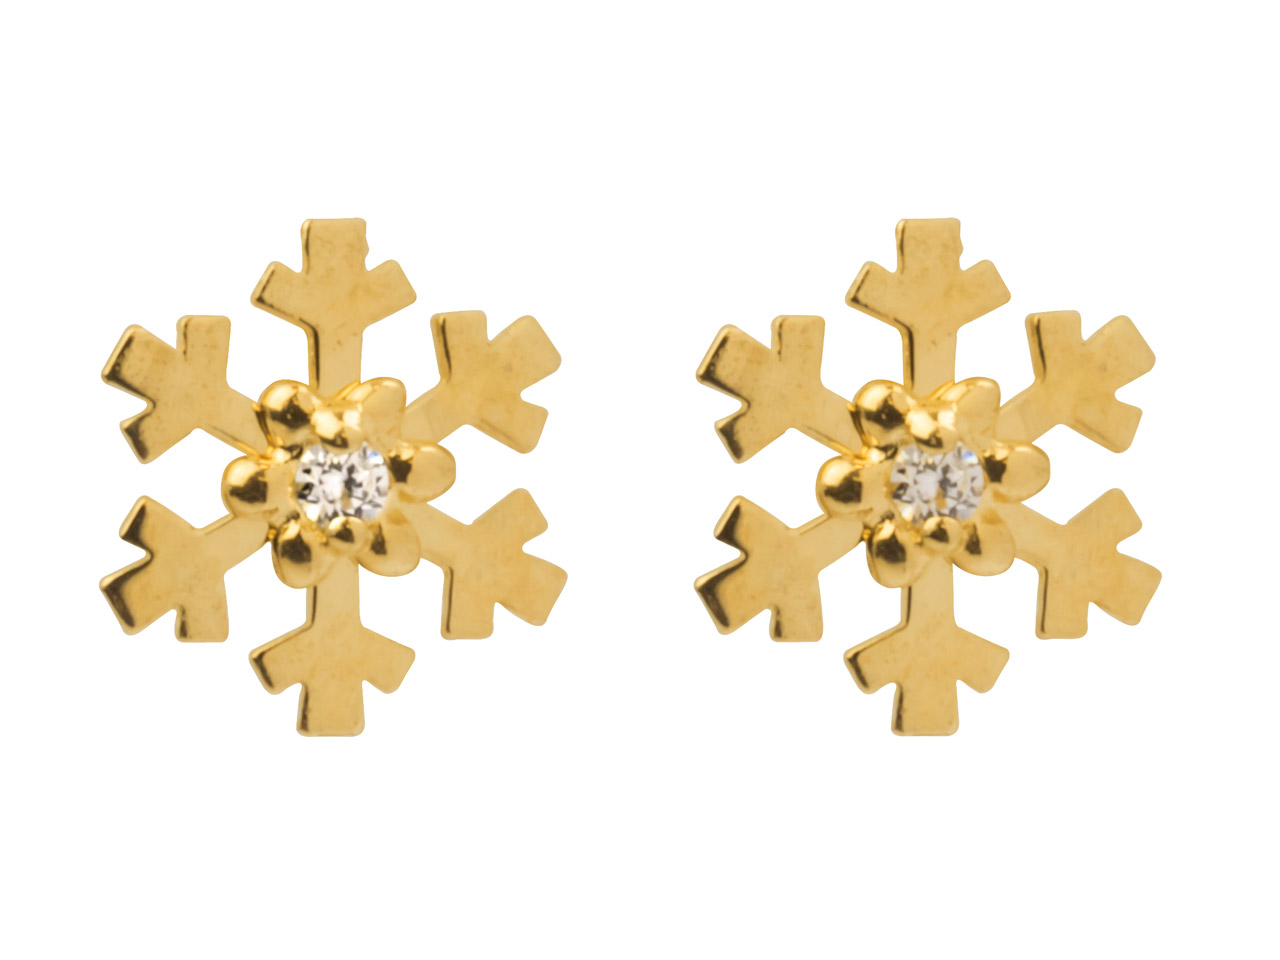 9ct Yellow Gold Snowflake Stud Earrings Set With Cubic Zirconia